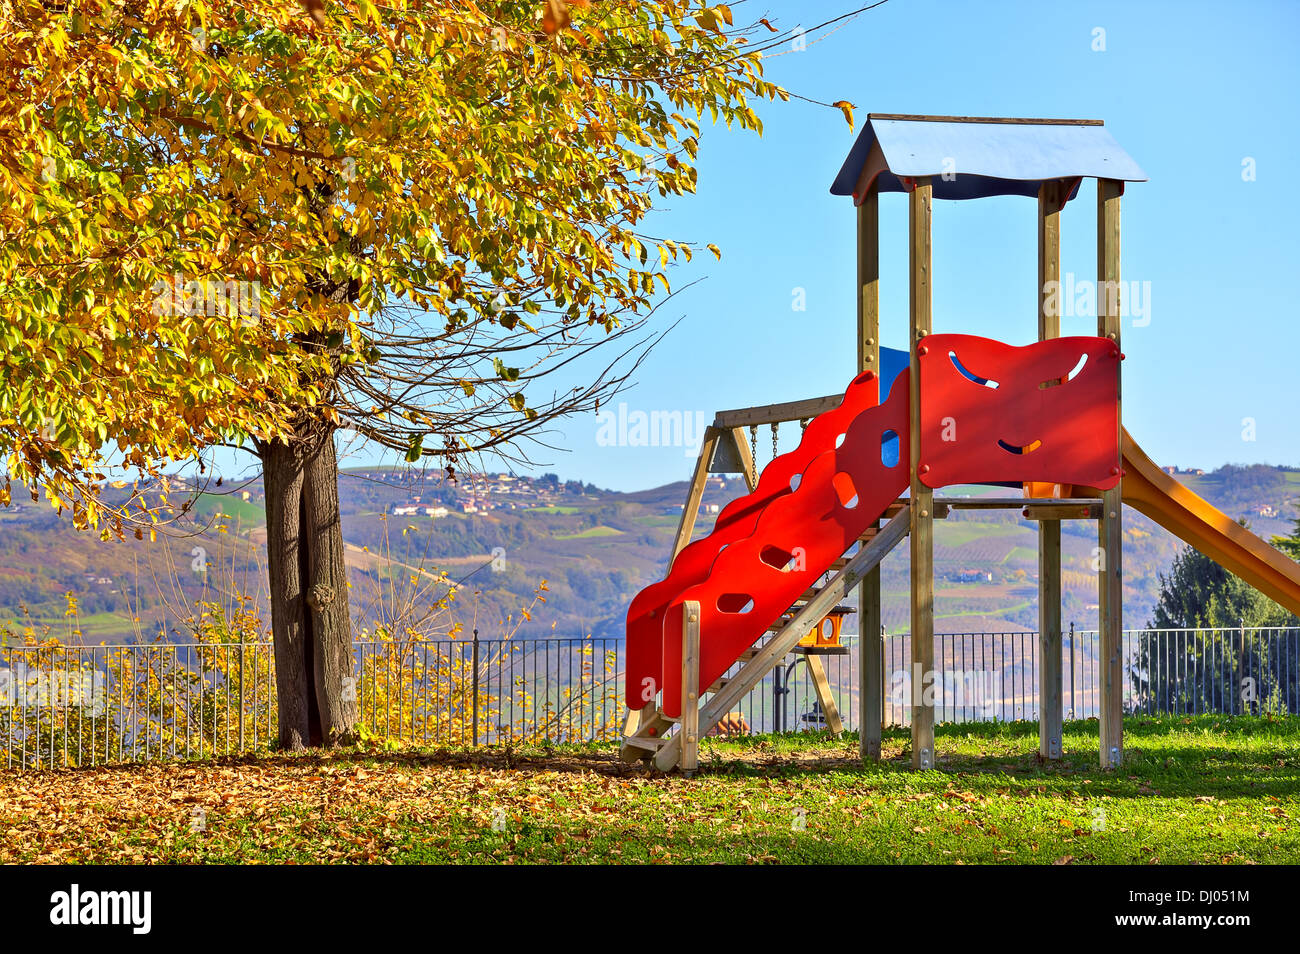 Lone children's slide on empty playground in autumn in small town of Diano D'Alba, Italy. - Stock Image